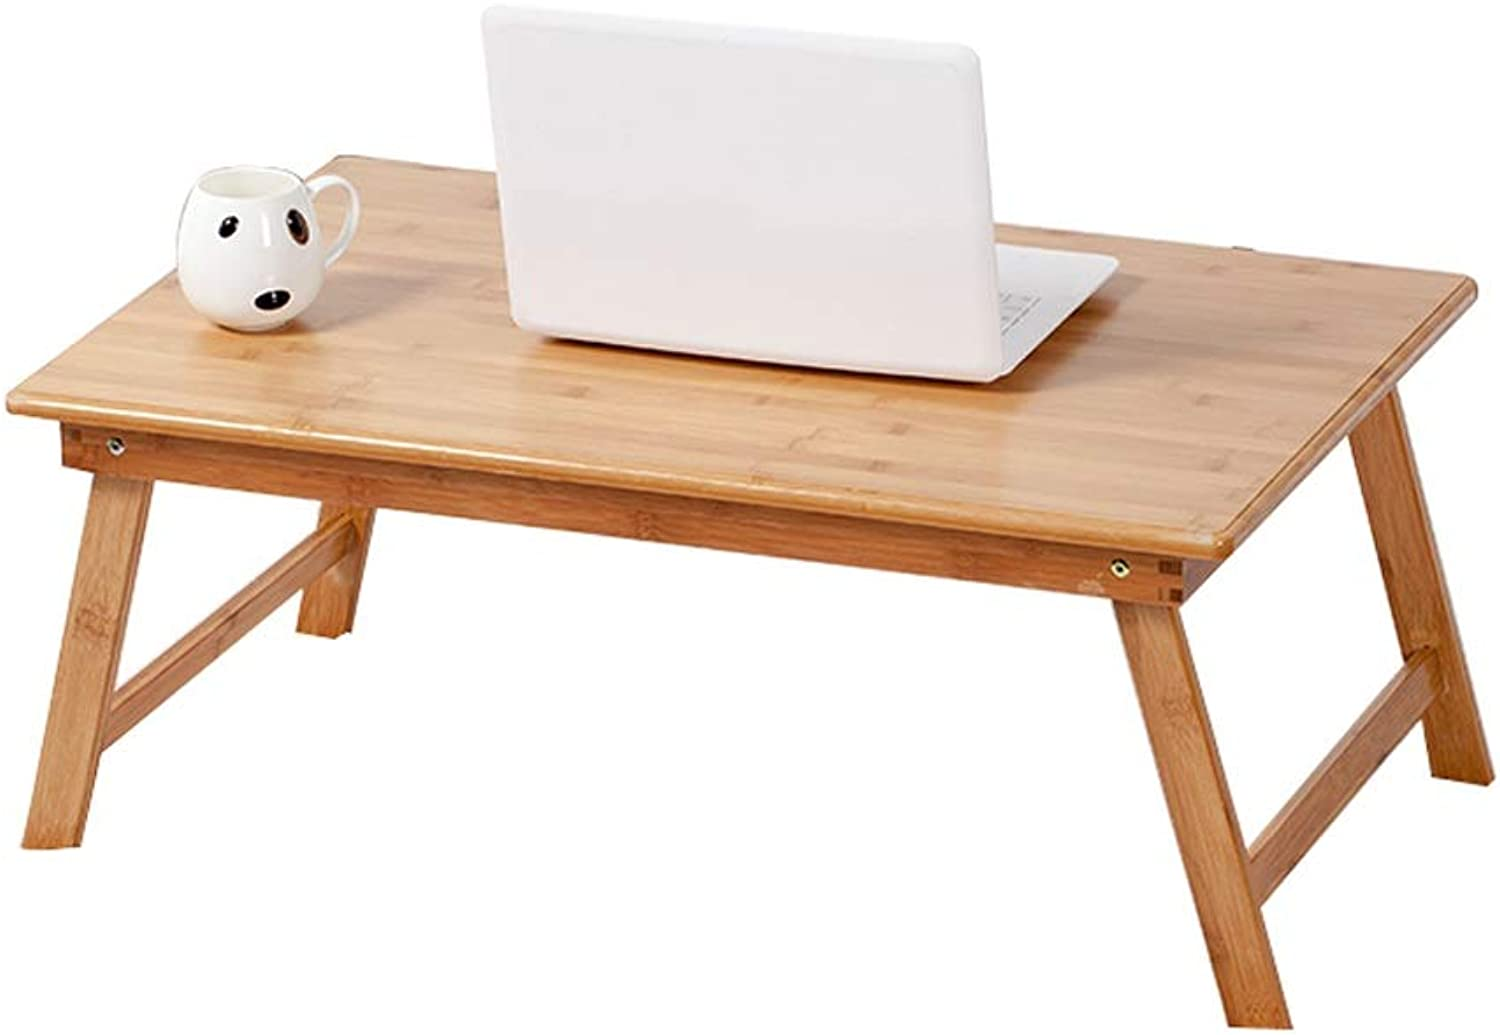 Laptop Table Foldable Small Table Simple Lazy Reading Table Learning Desk Sofa Portable Table, Bamboo(60x40cm)